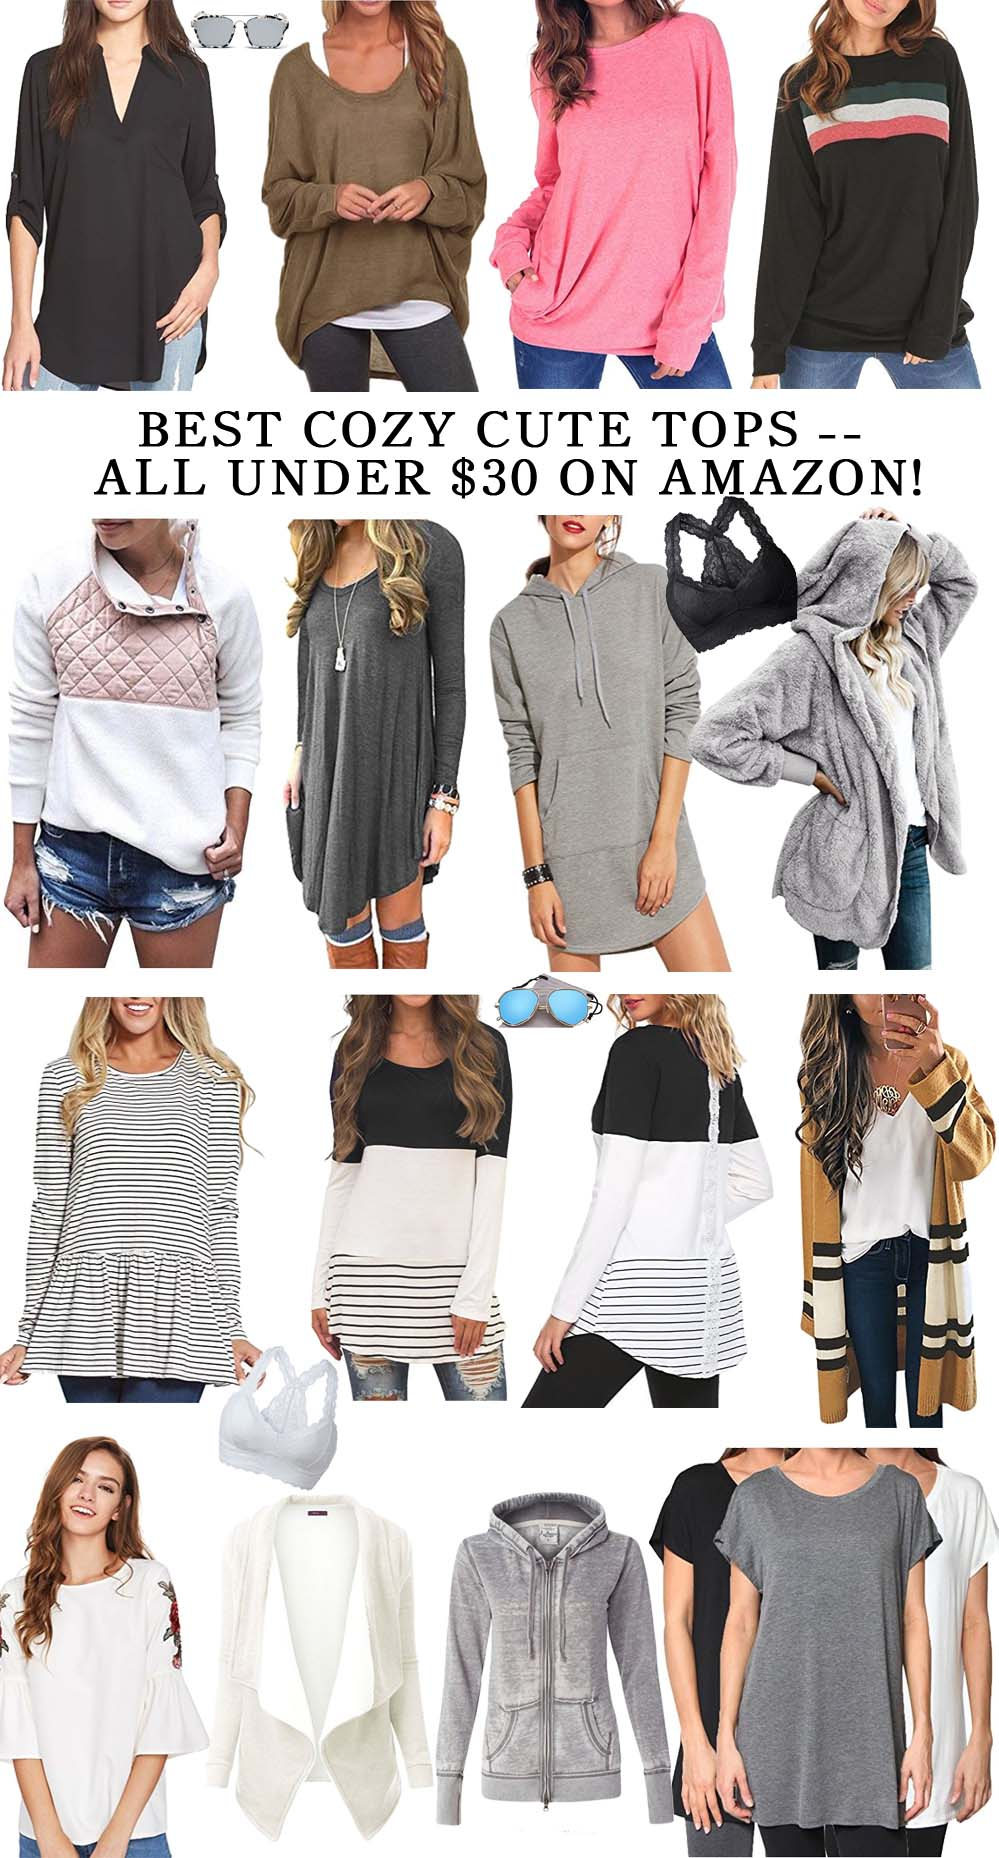 The Cutest, Coziest Tops -- under $30 on Amazon! // the modern savvy